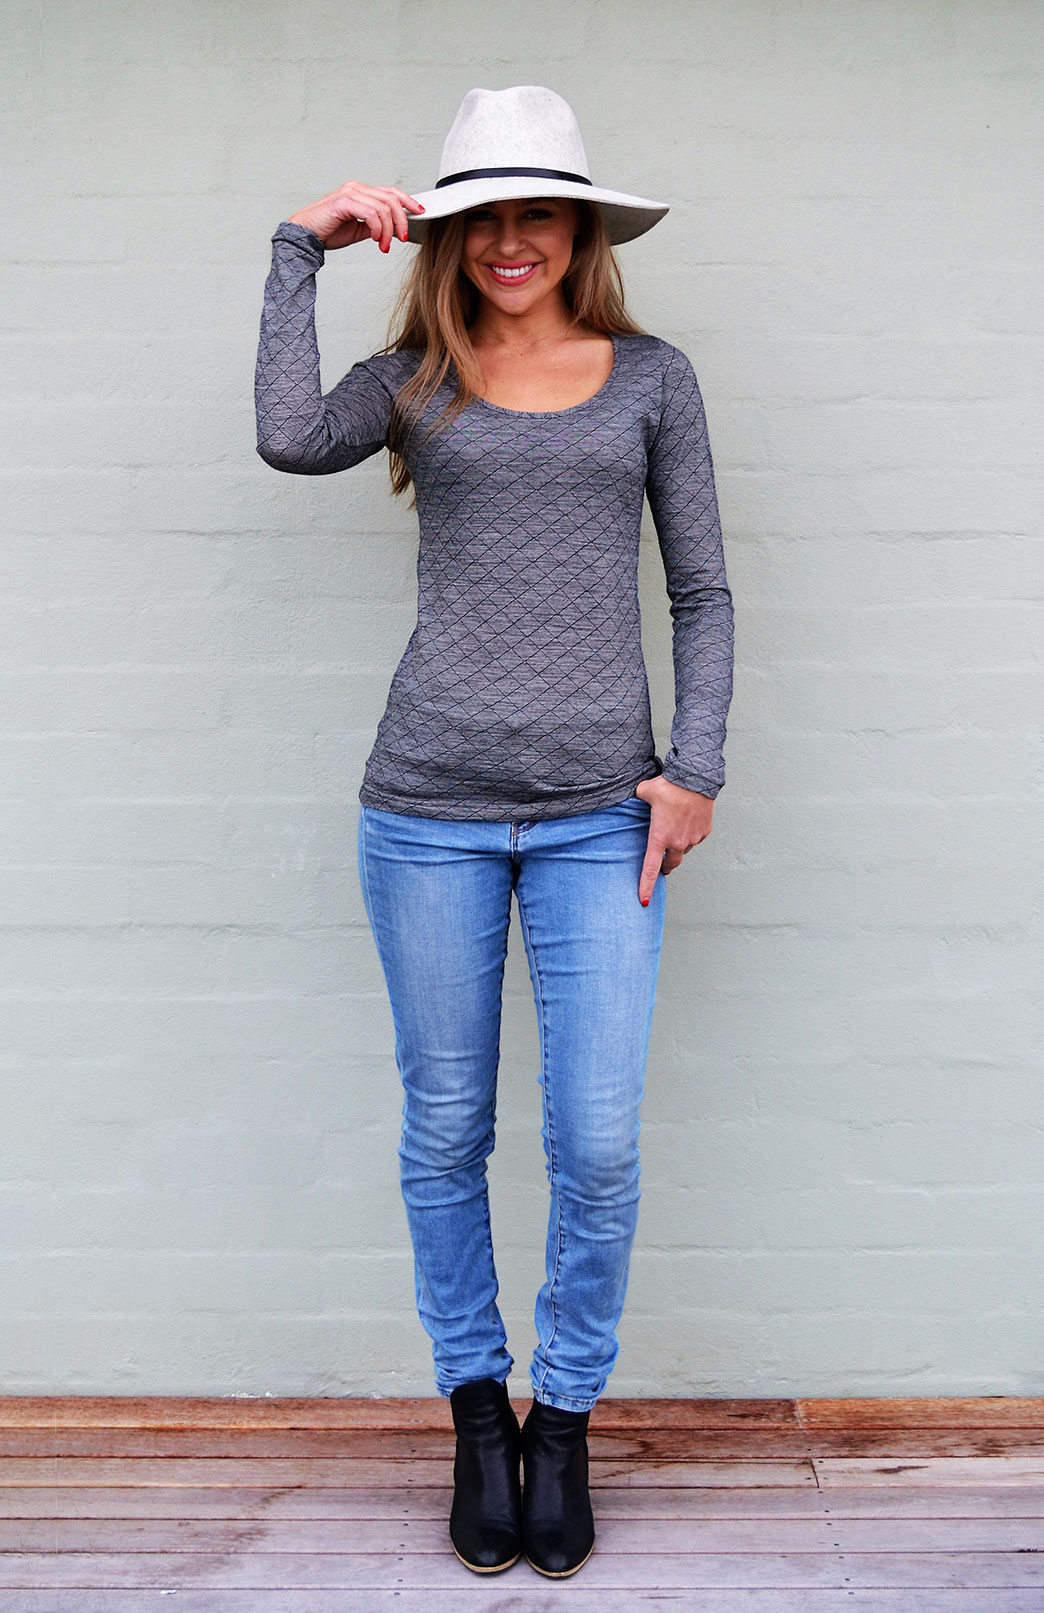 Scoop Neck Top - Patterned - Women's Black Grey Patterned Merino Wool Long Sleeved Thermal Top with Scoop Neckline - Smitten Merino Tasmania Australia